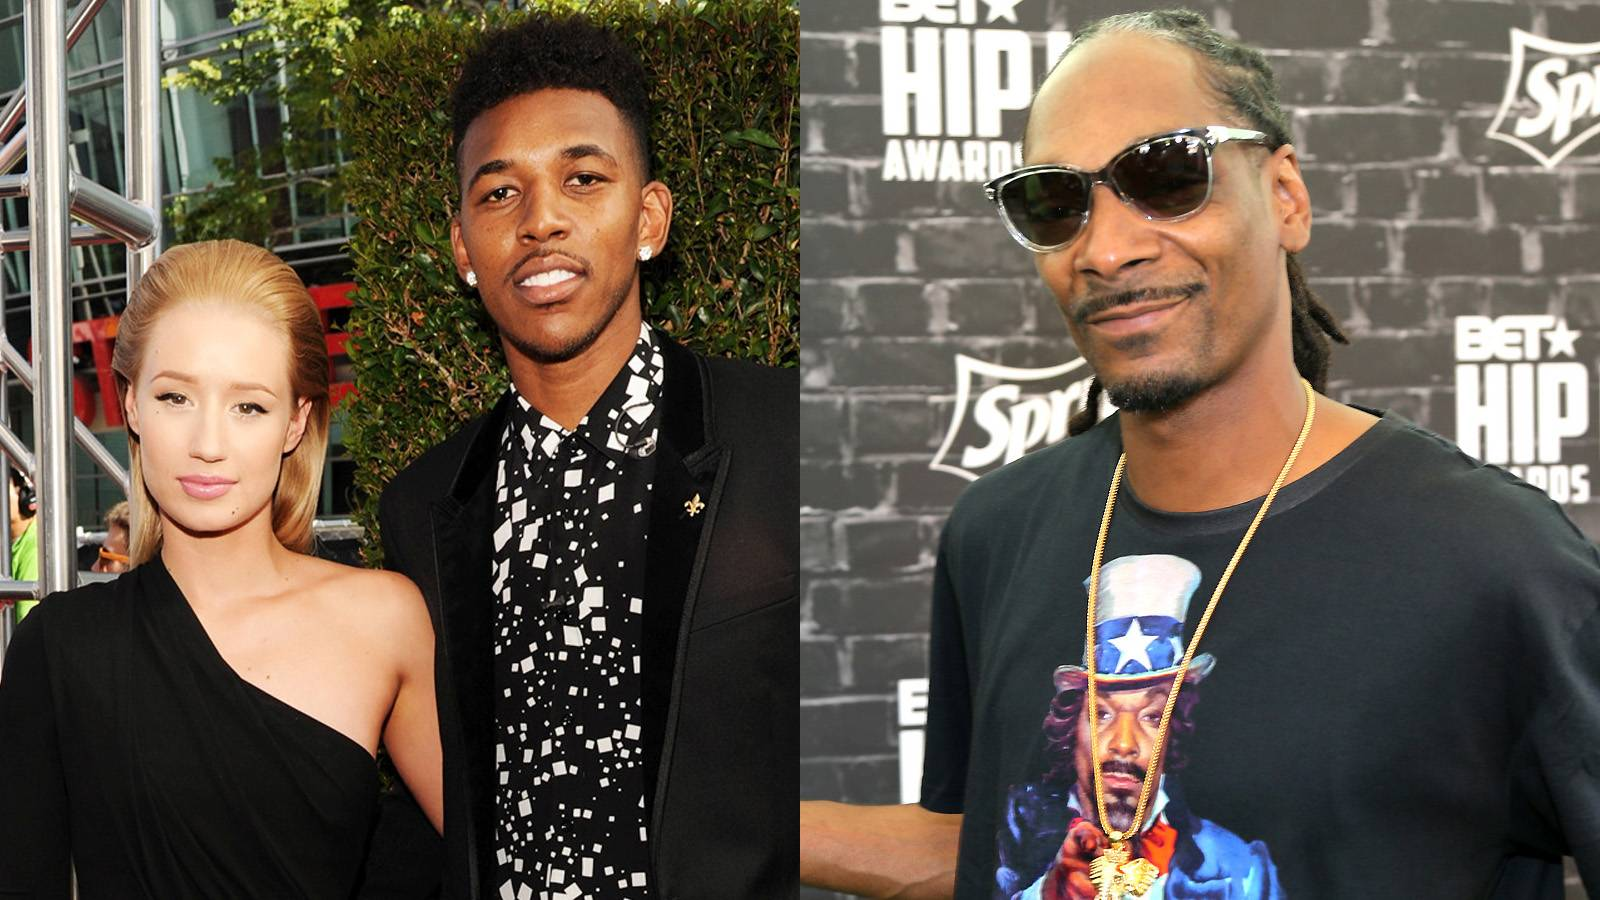 """Nick Young Defends His Boo - Iggy Azalea's baller boo, Nick Young, stepped up to defend her against Snoop Dogg's jabs on social media.""""Ain't nobody worried about no Snoop Lion..this dude just got thru a midlife crisis You Go get convertible yet. OGs out here losin. [sic]""""  Young had more tweets for Snoop, poking at his age, so you get the idea. As long as this war of words stays on social media.(Photos from left: Kevin Mazur/WireImage, Johnny Nunez/BET/Getty Images for BET)"""